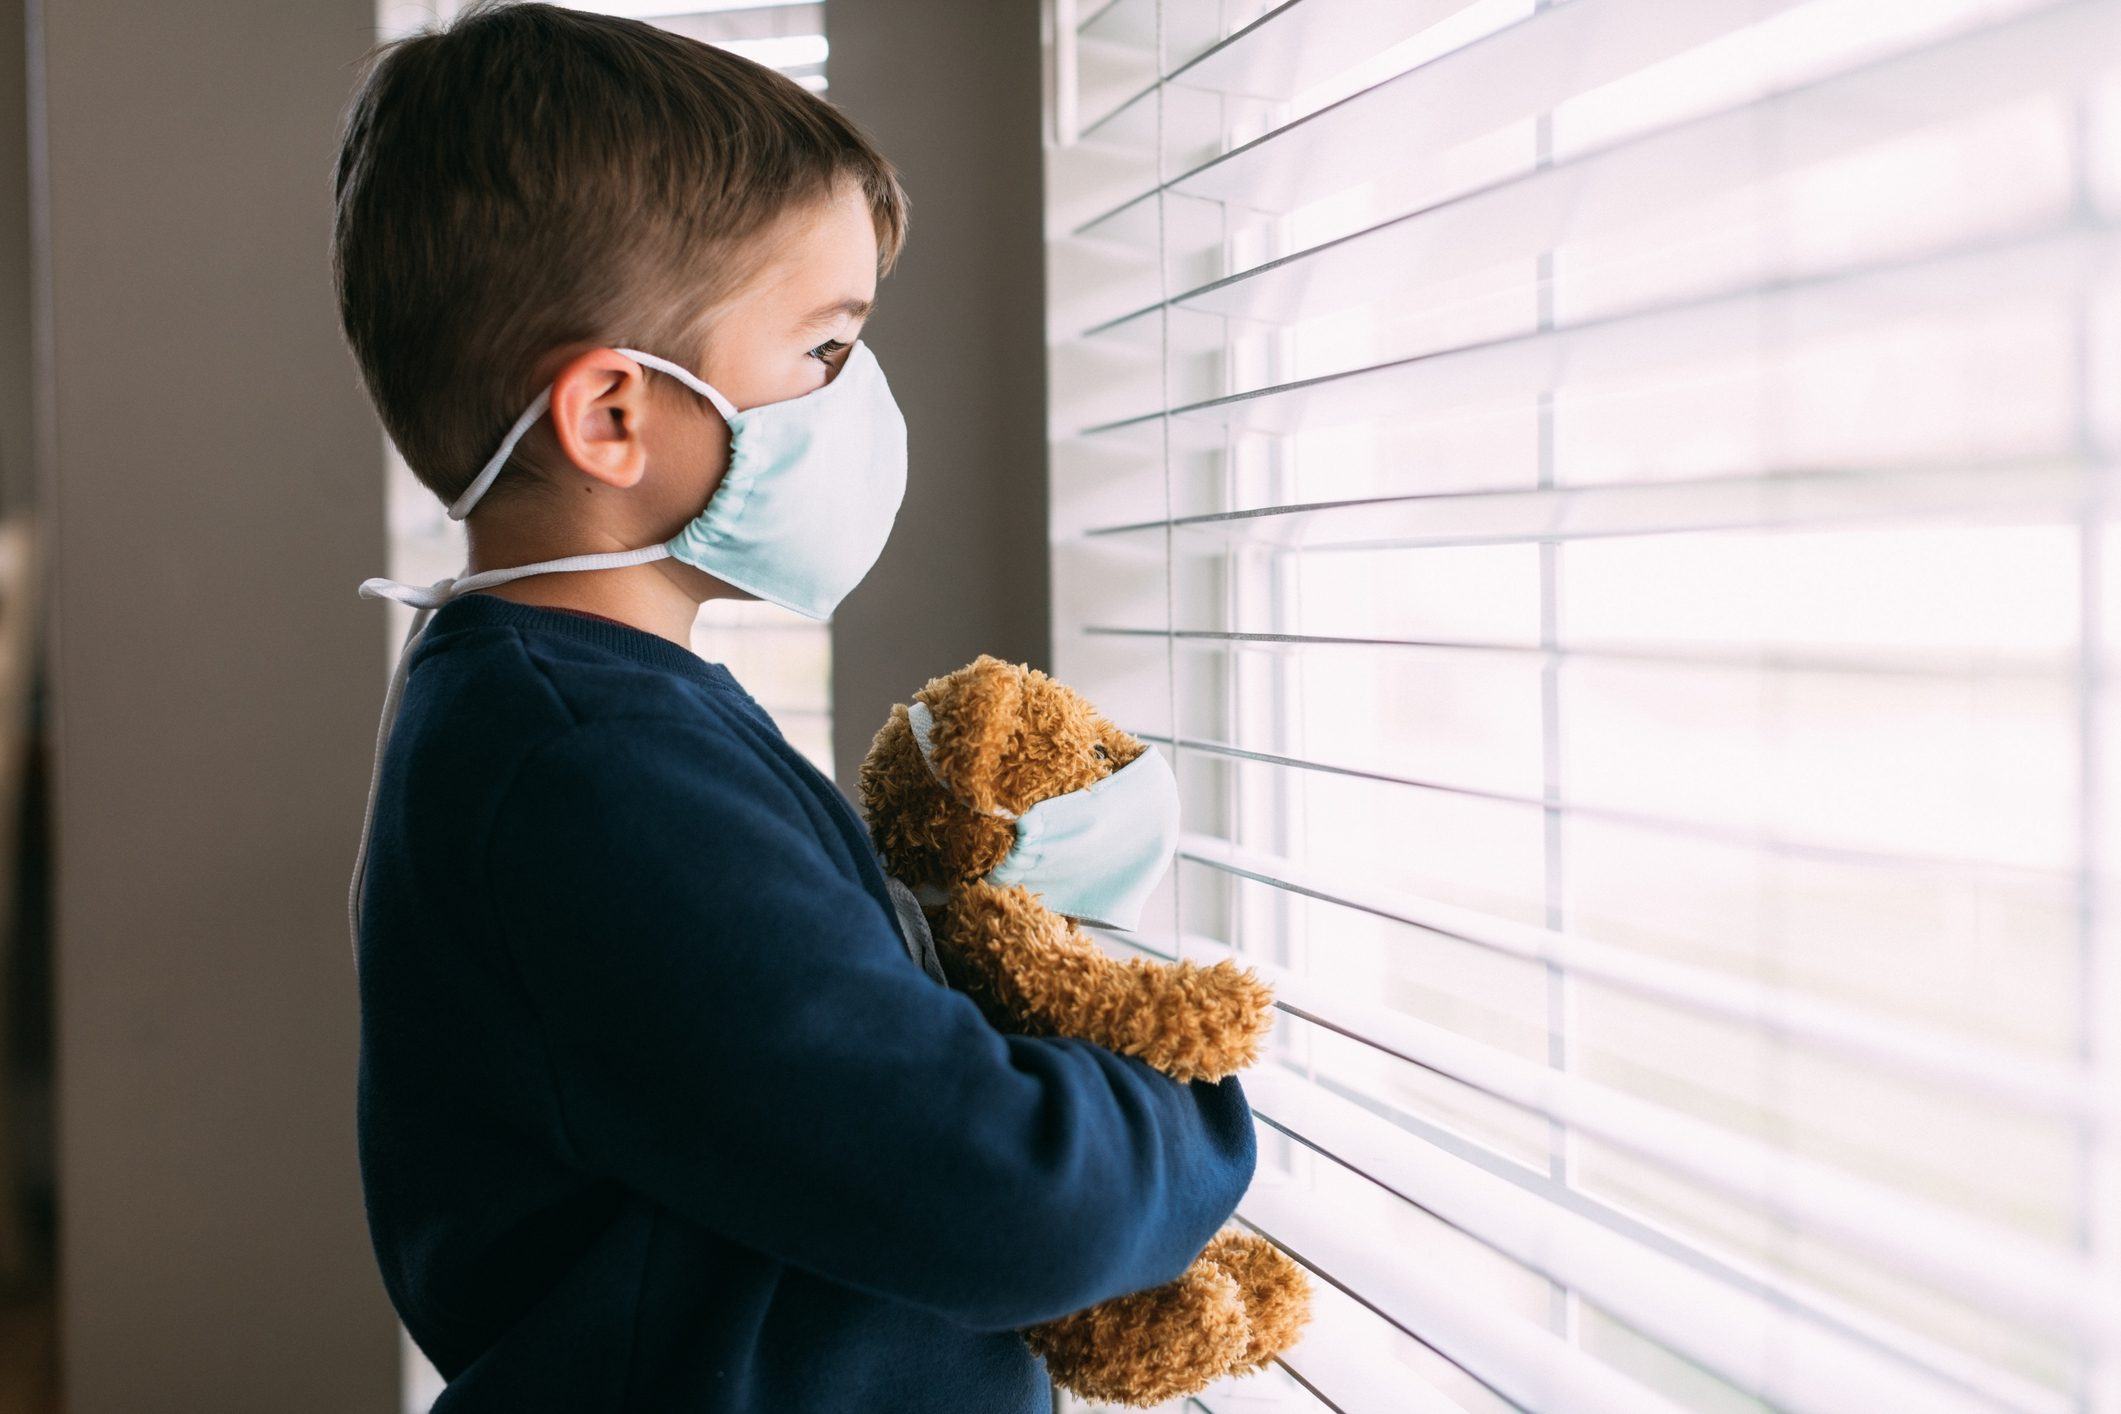 Young Boy and his Teddy Wearing Face Masks